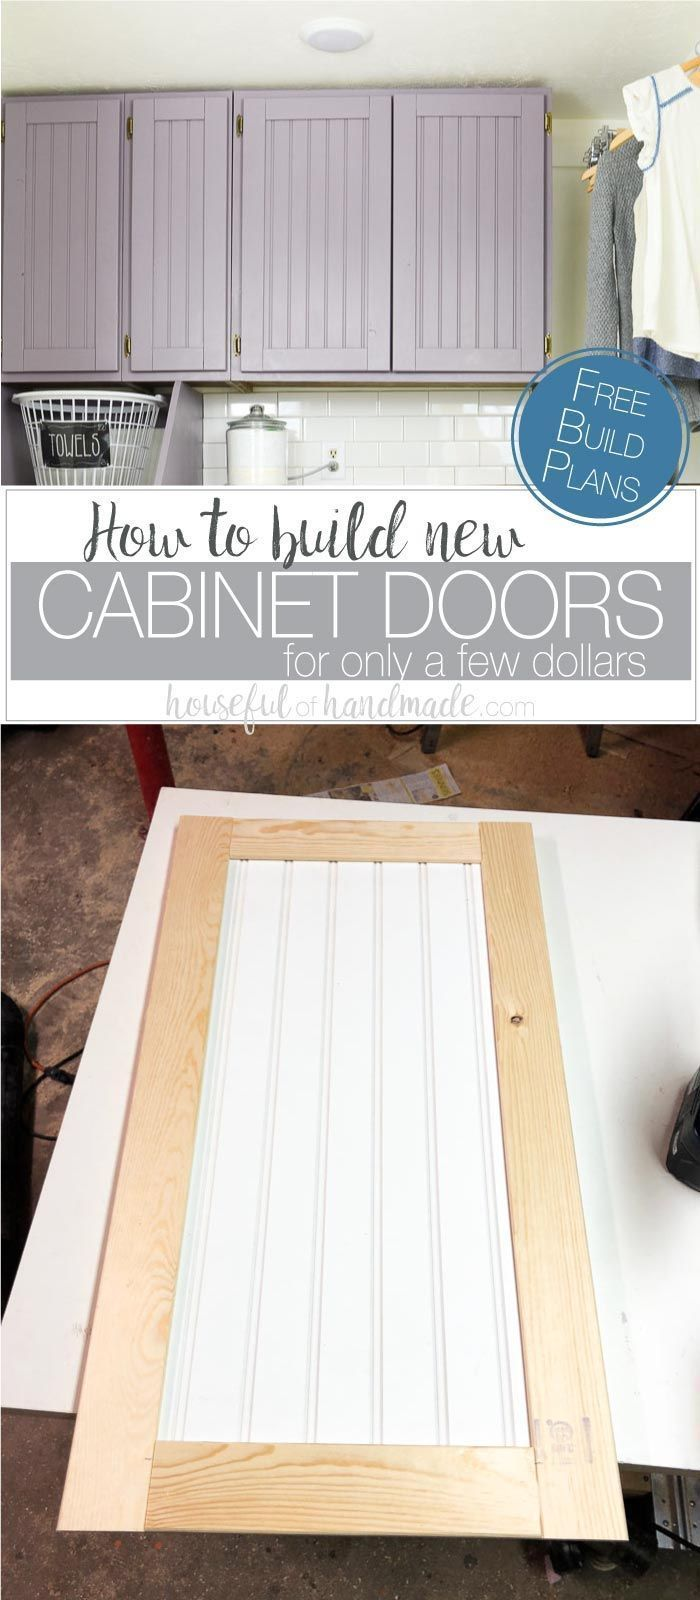 How to Build Cabinet Doors Cheap | Diy cabinet doors ...